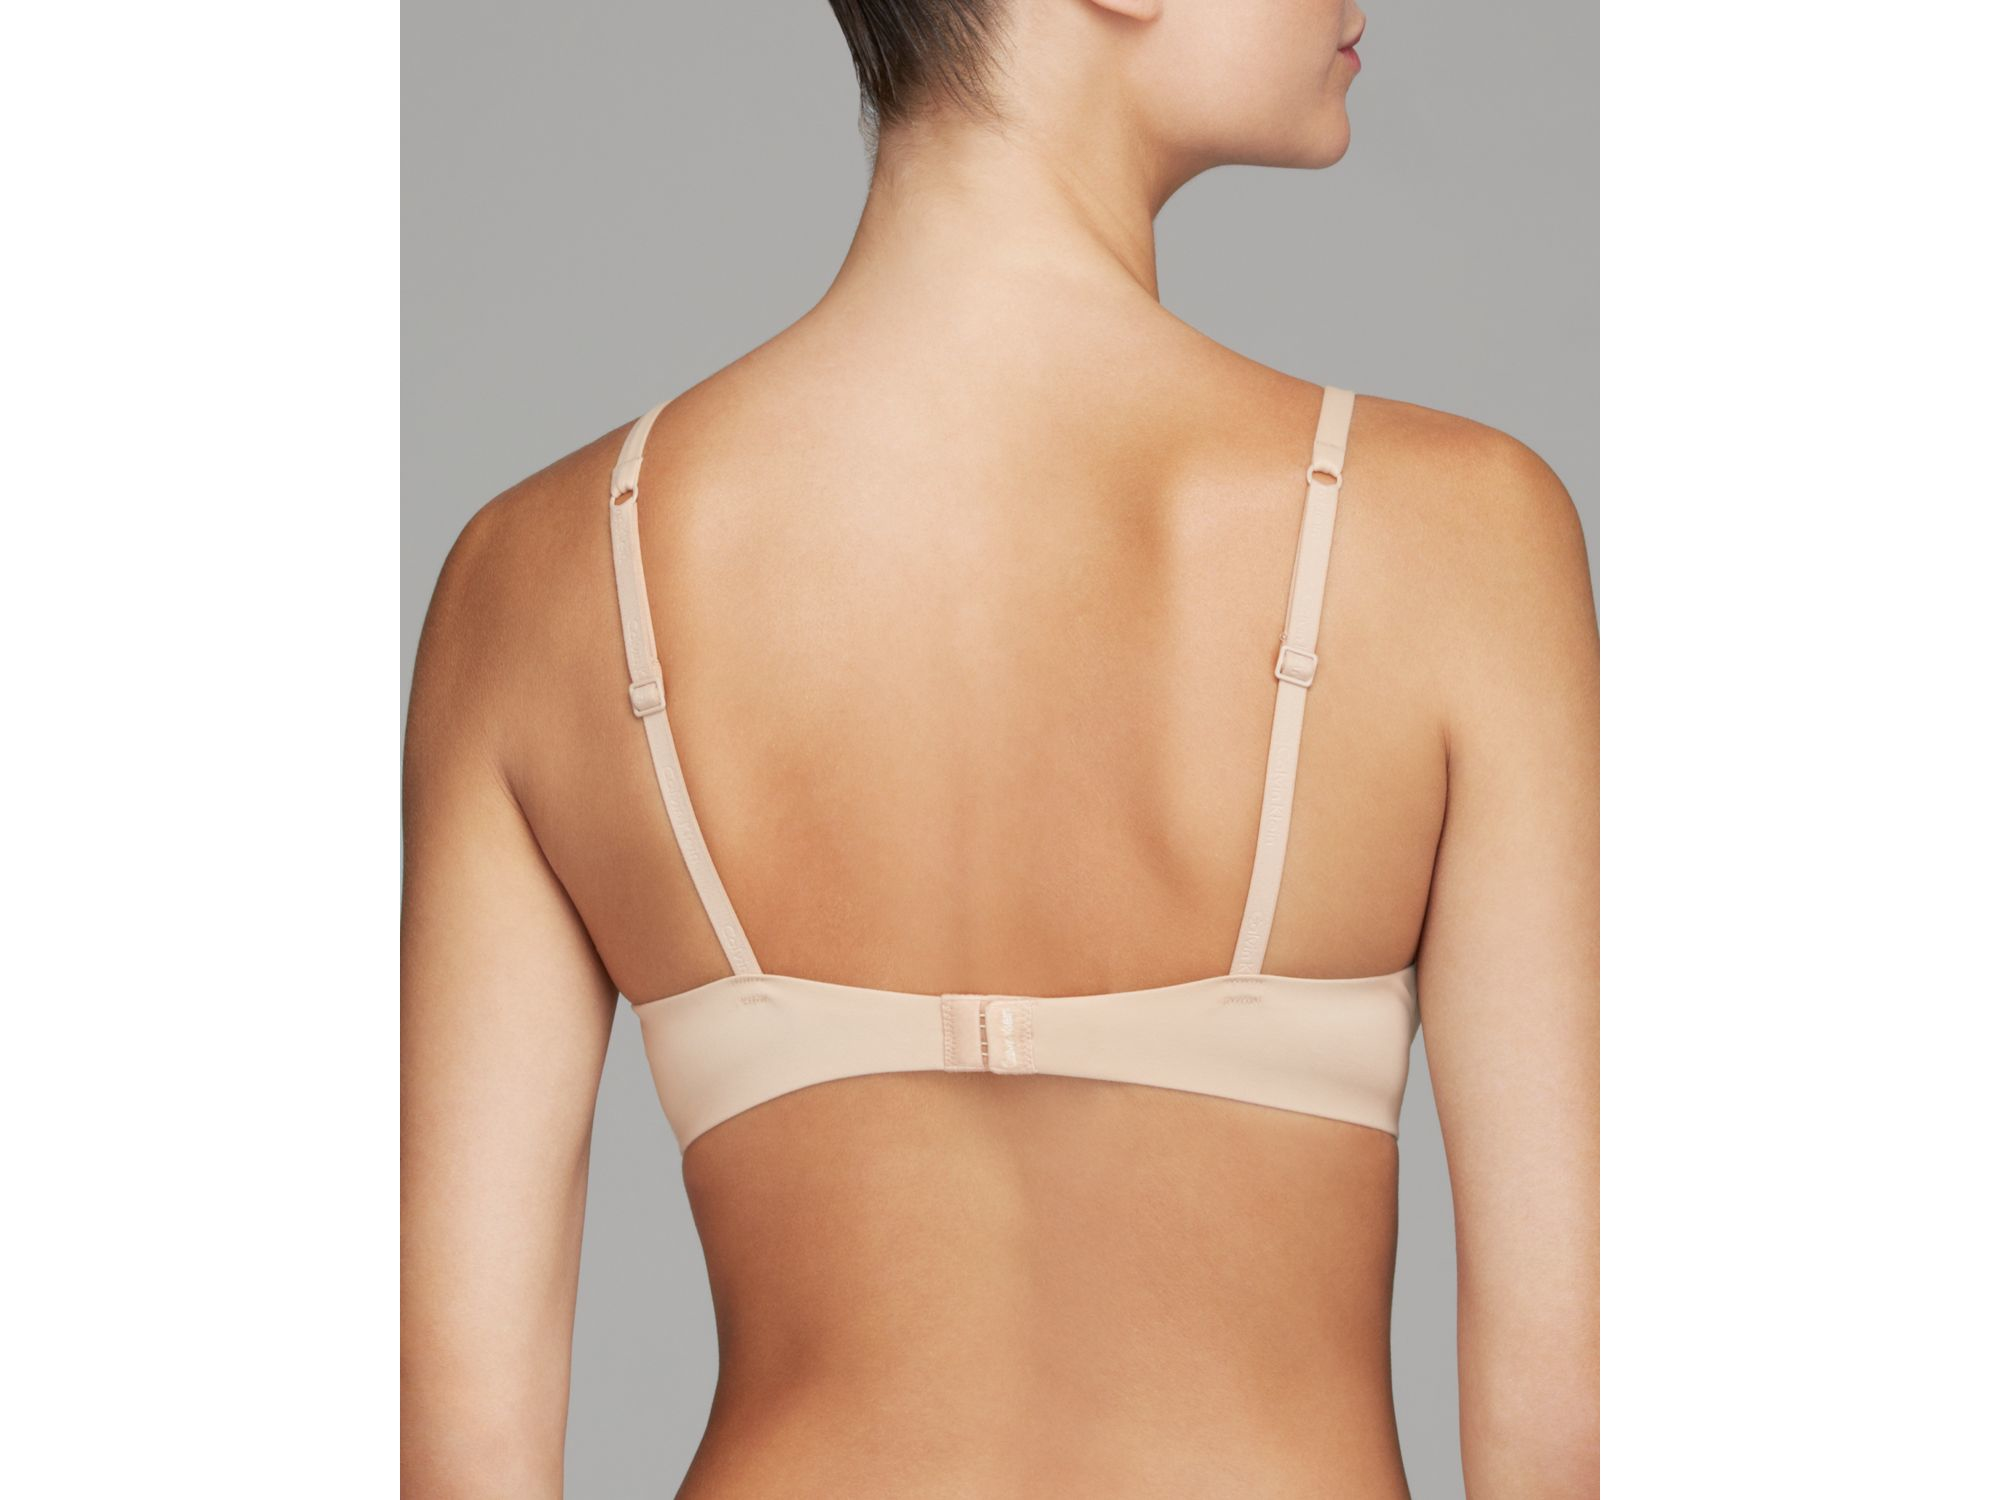 feb1ff7a49 Calvin Klein Bra - Perfectly Fit Bare Underwire  f3840 in Pink - Lyst